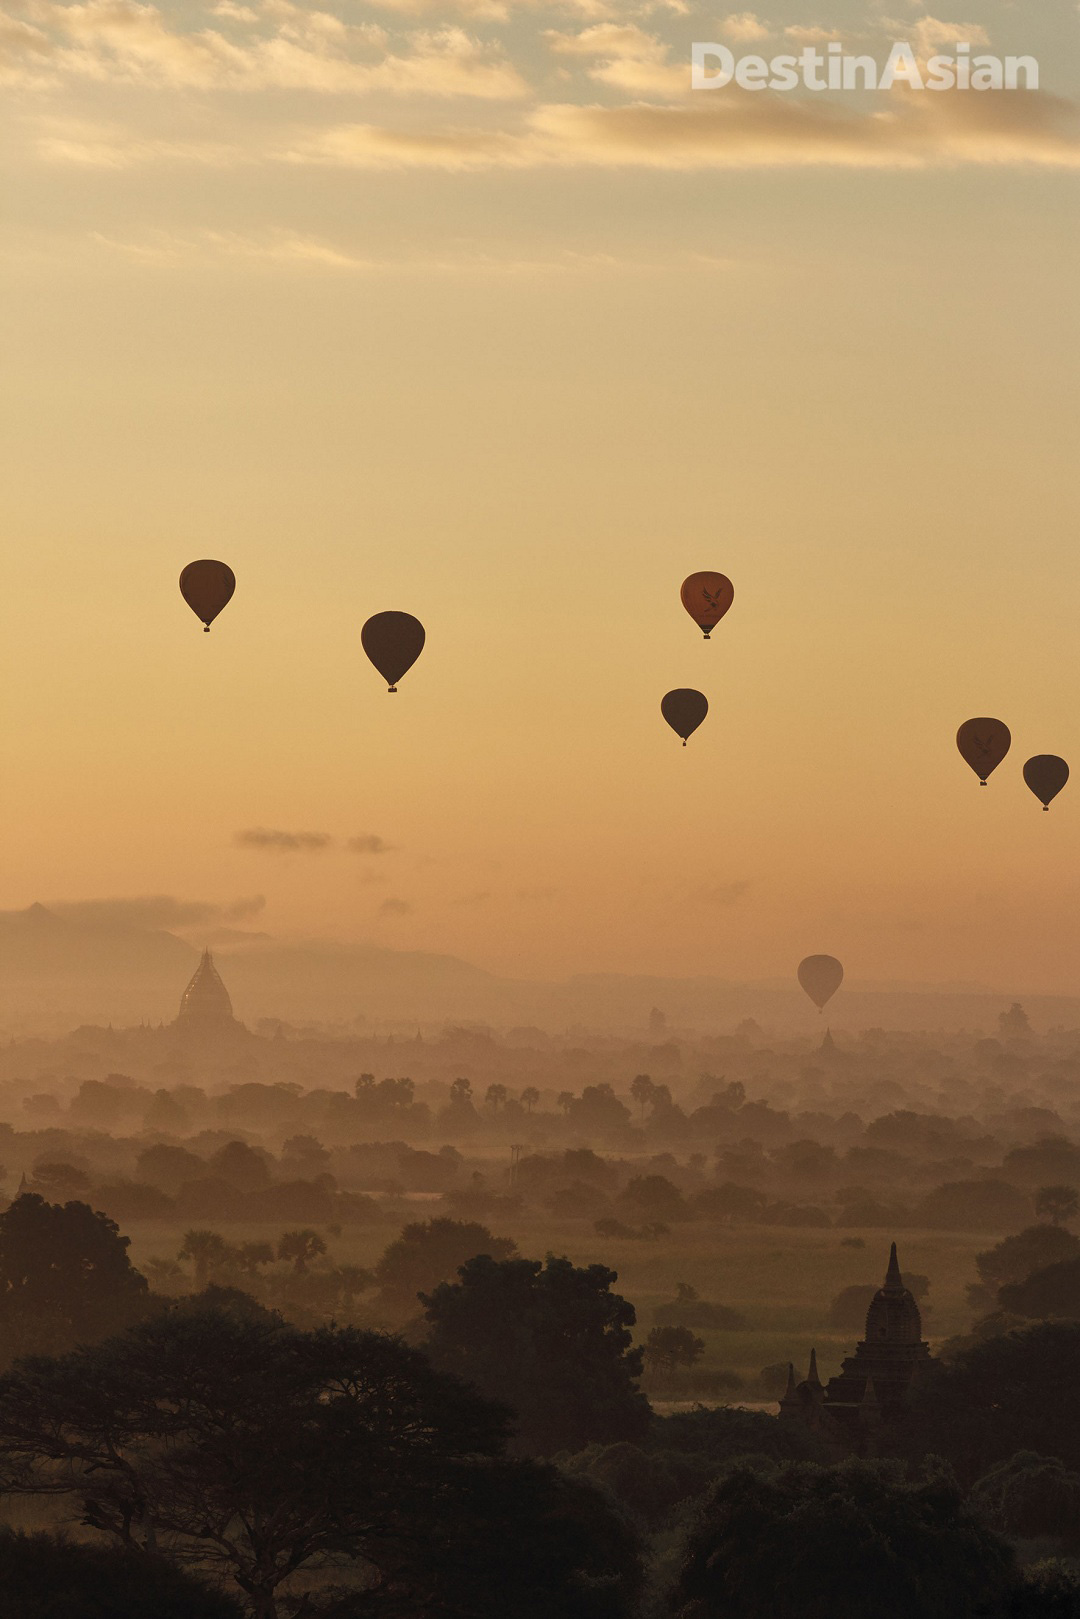 Hot-air balloons on a dawn flight over the temples and pagodas of Bagan.